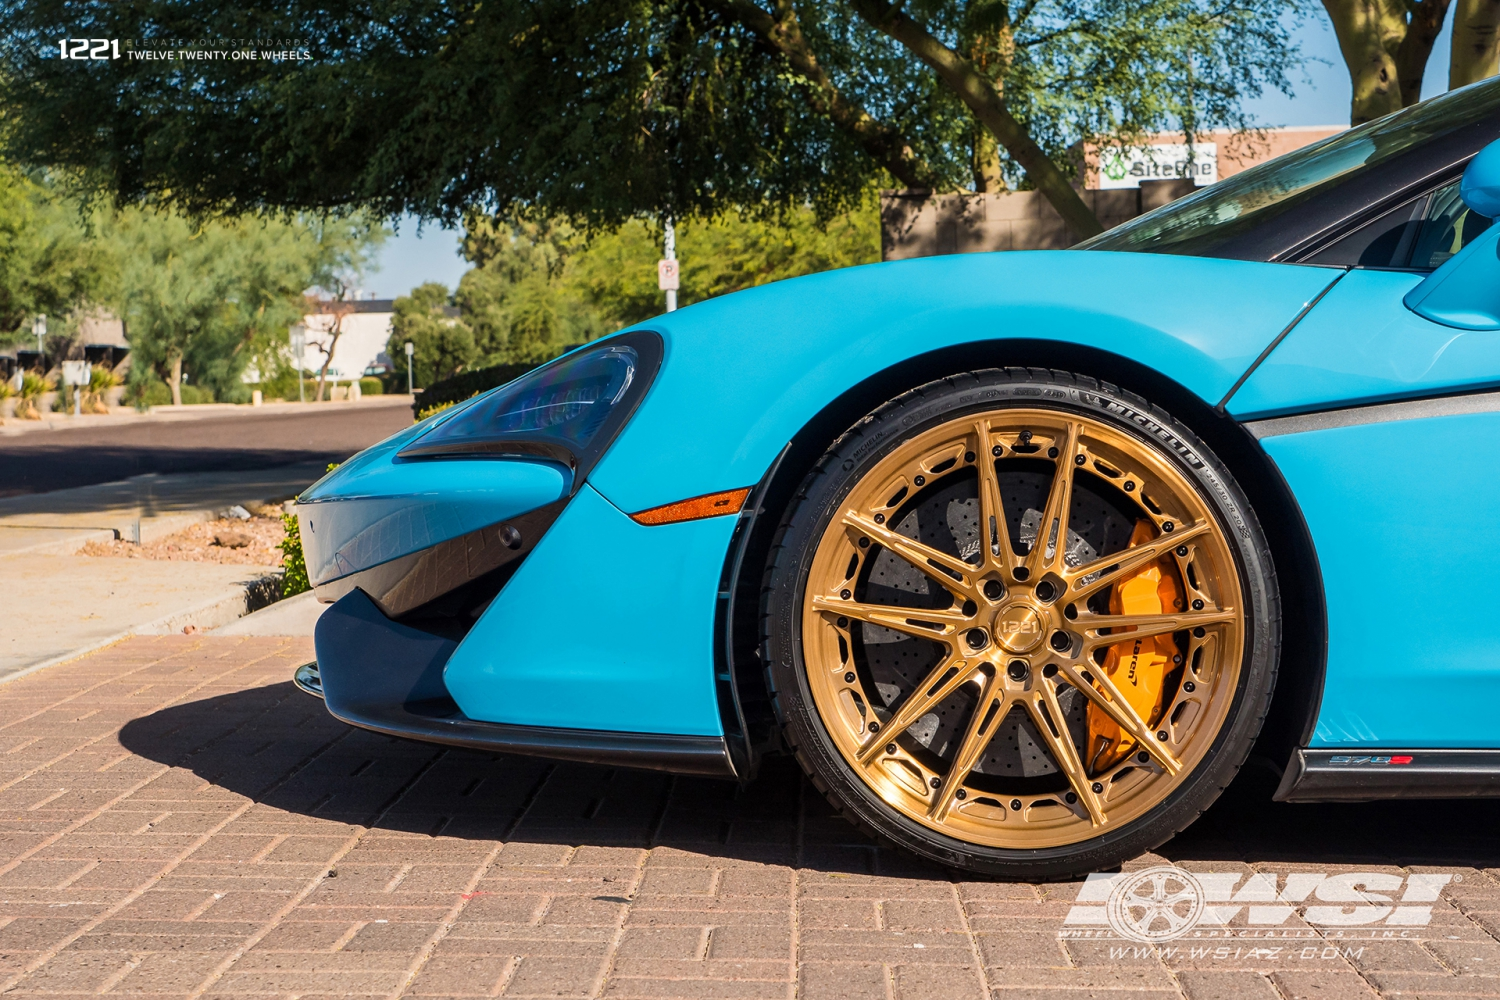 McLaren 570s Super Hyper Car Forged Concave Wheels